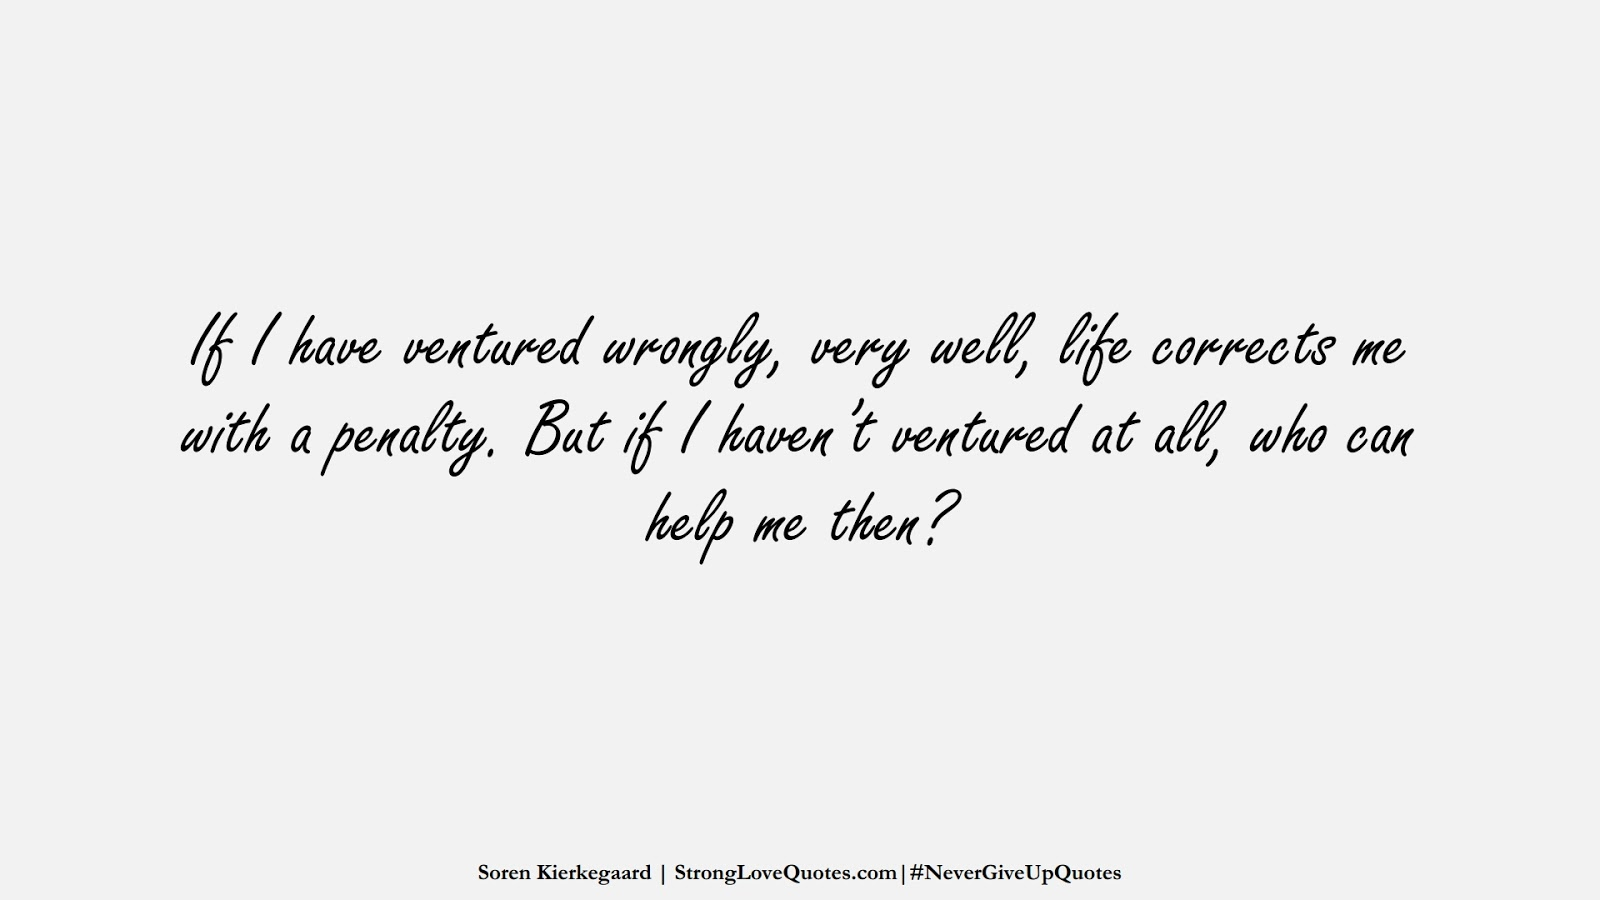 If I have ventured wrongly, very well, life corrects me with a penalty. But if I haven't ventured at all, who can help me then? (Soren Kierkegaard);  #NeverGiveUpQuotes